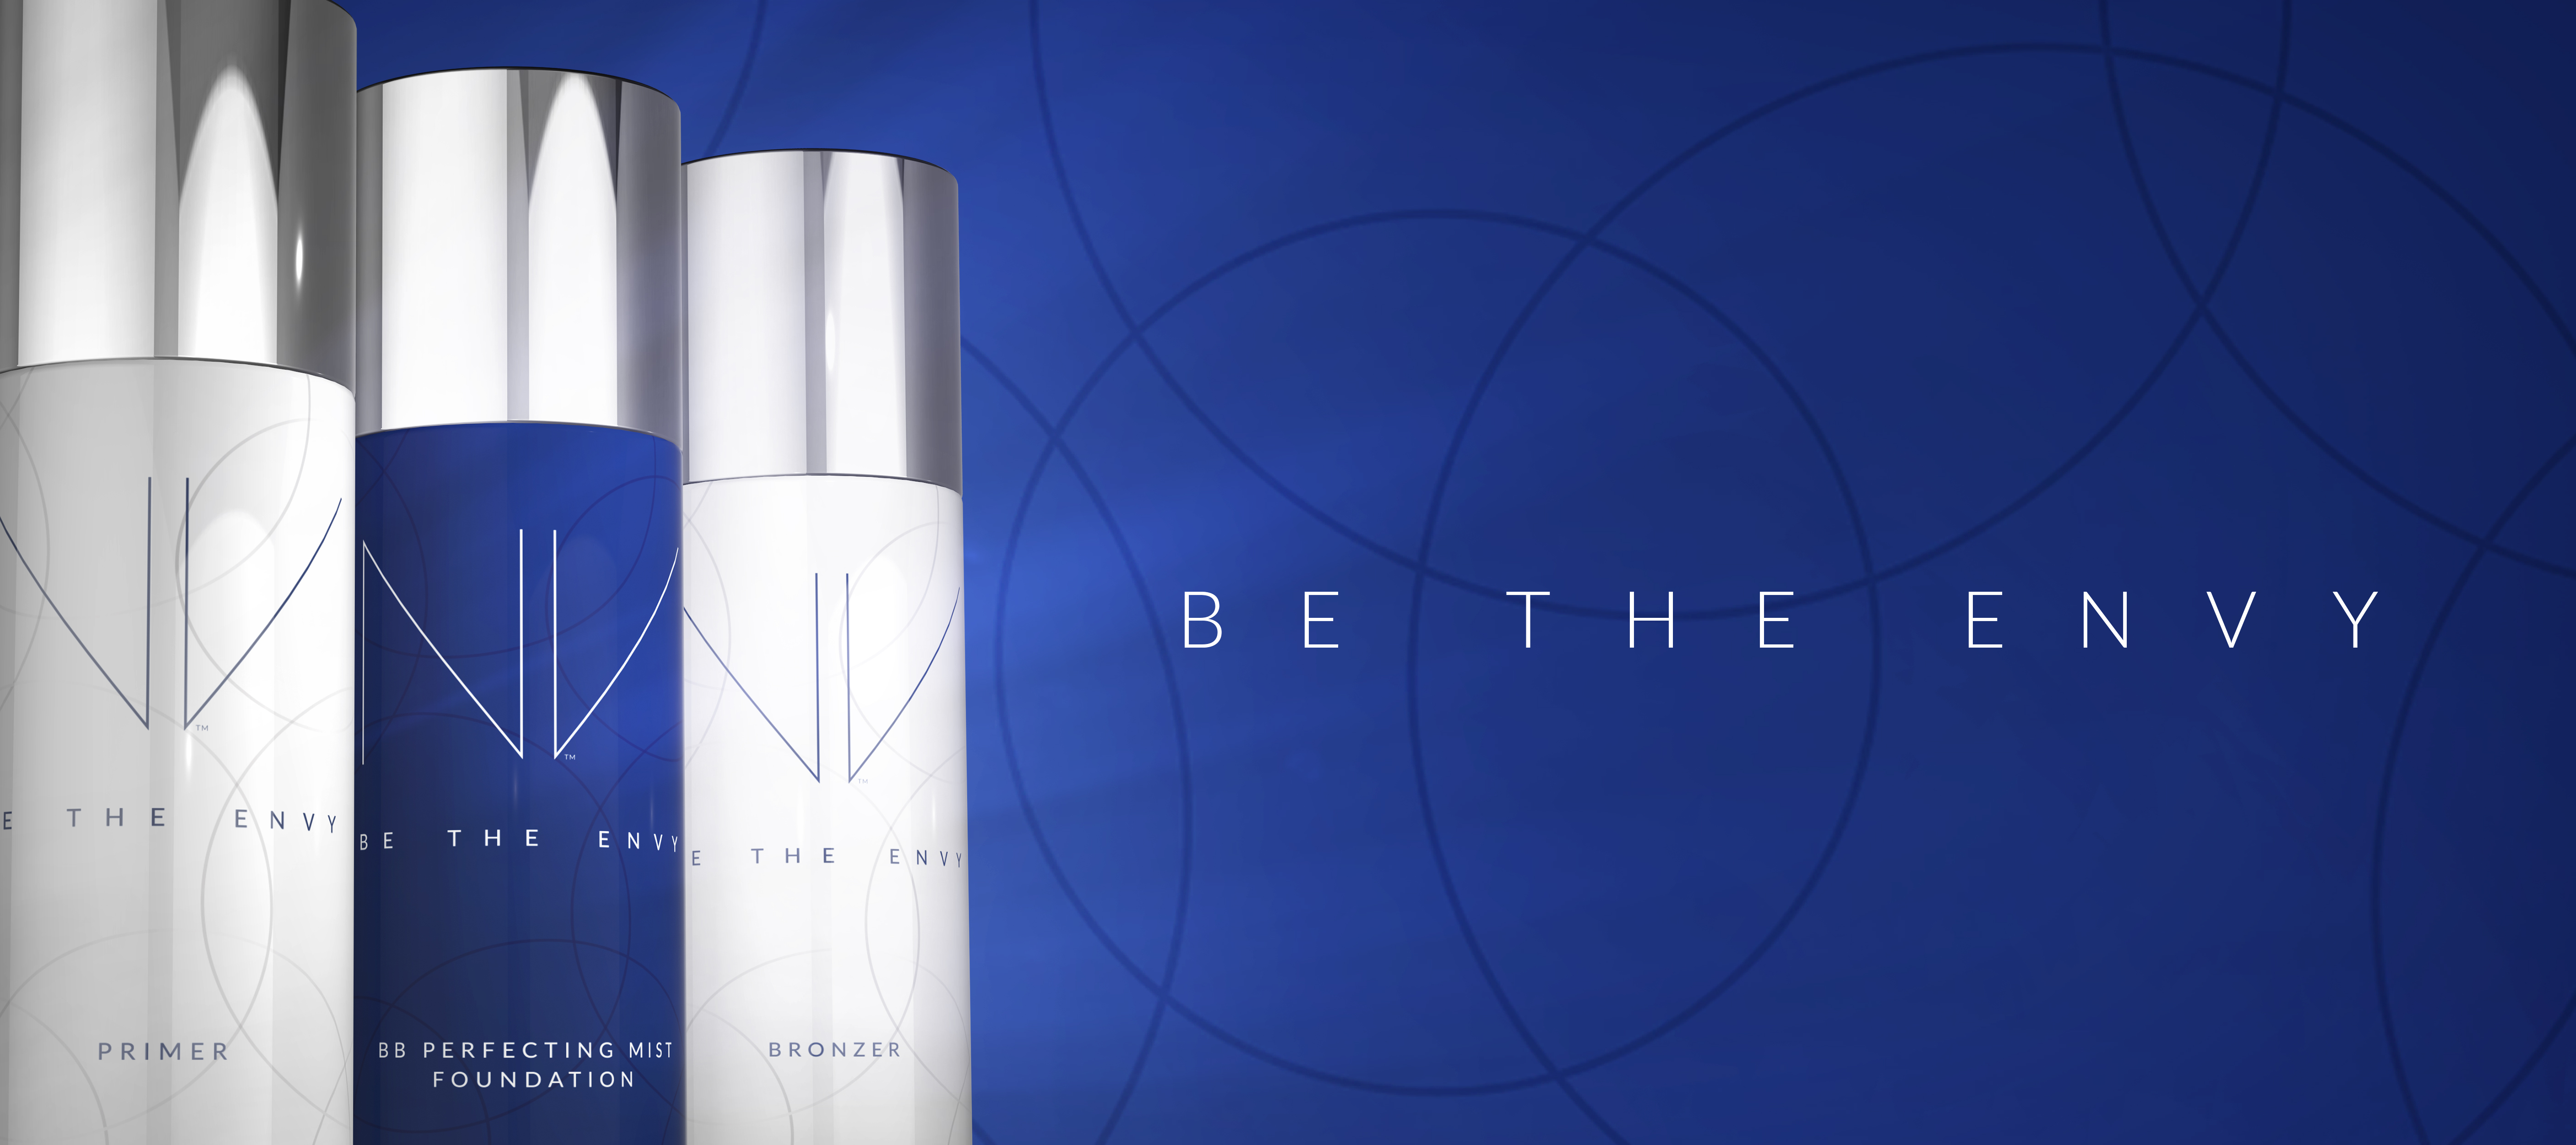 Jeunesse launches NV, an exclusive line of micro-mist foundations (Photo: Business Wire)